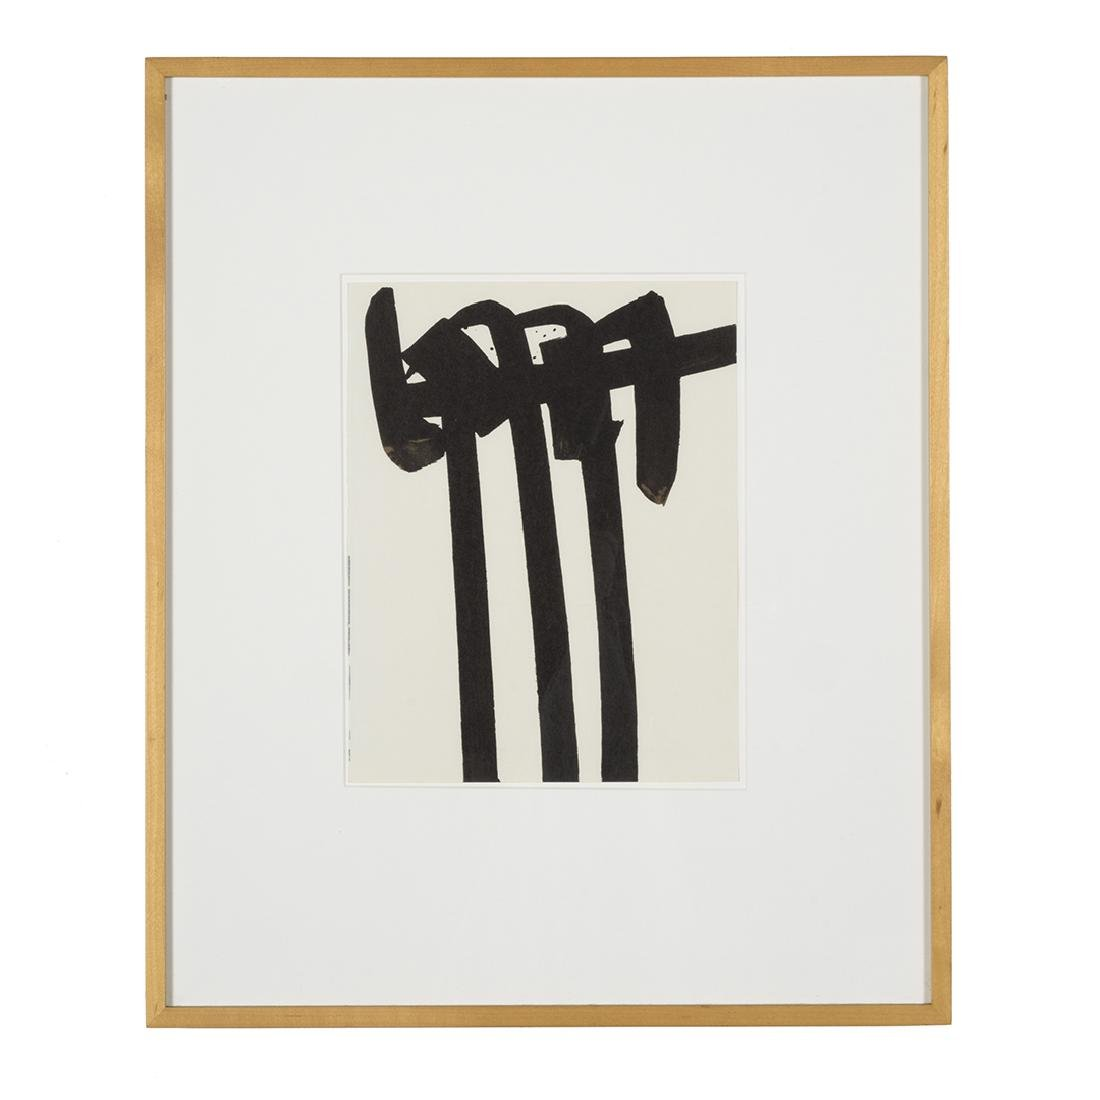 Pierre Soulages Lithographie Number 28